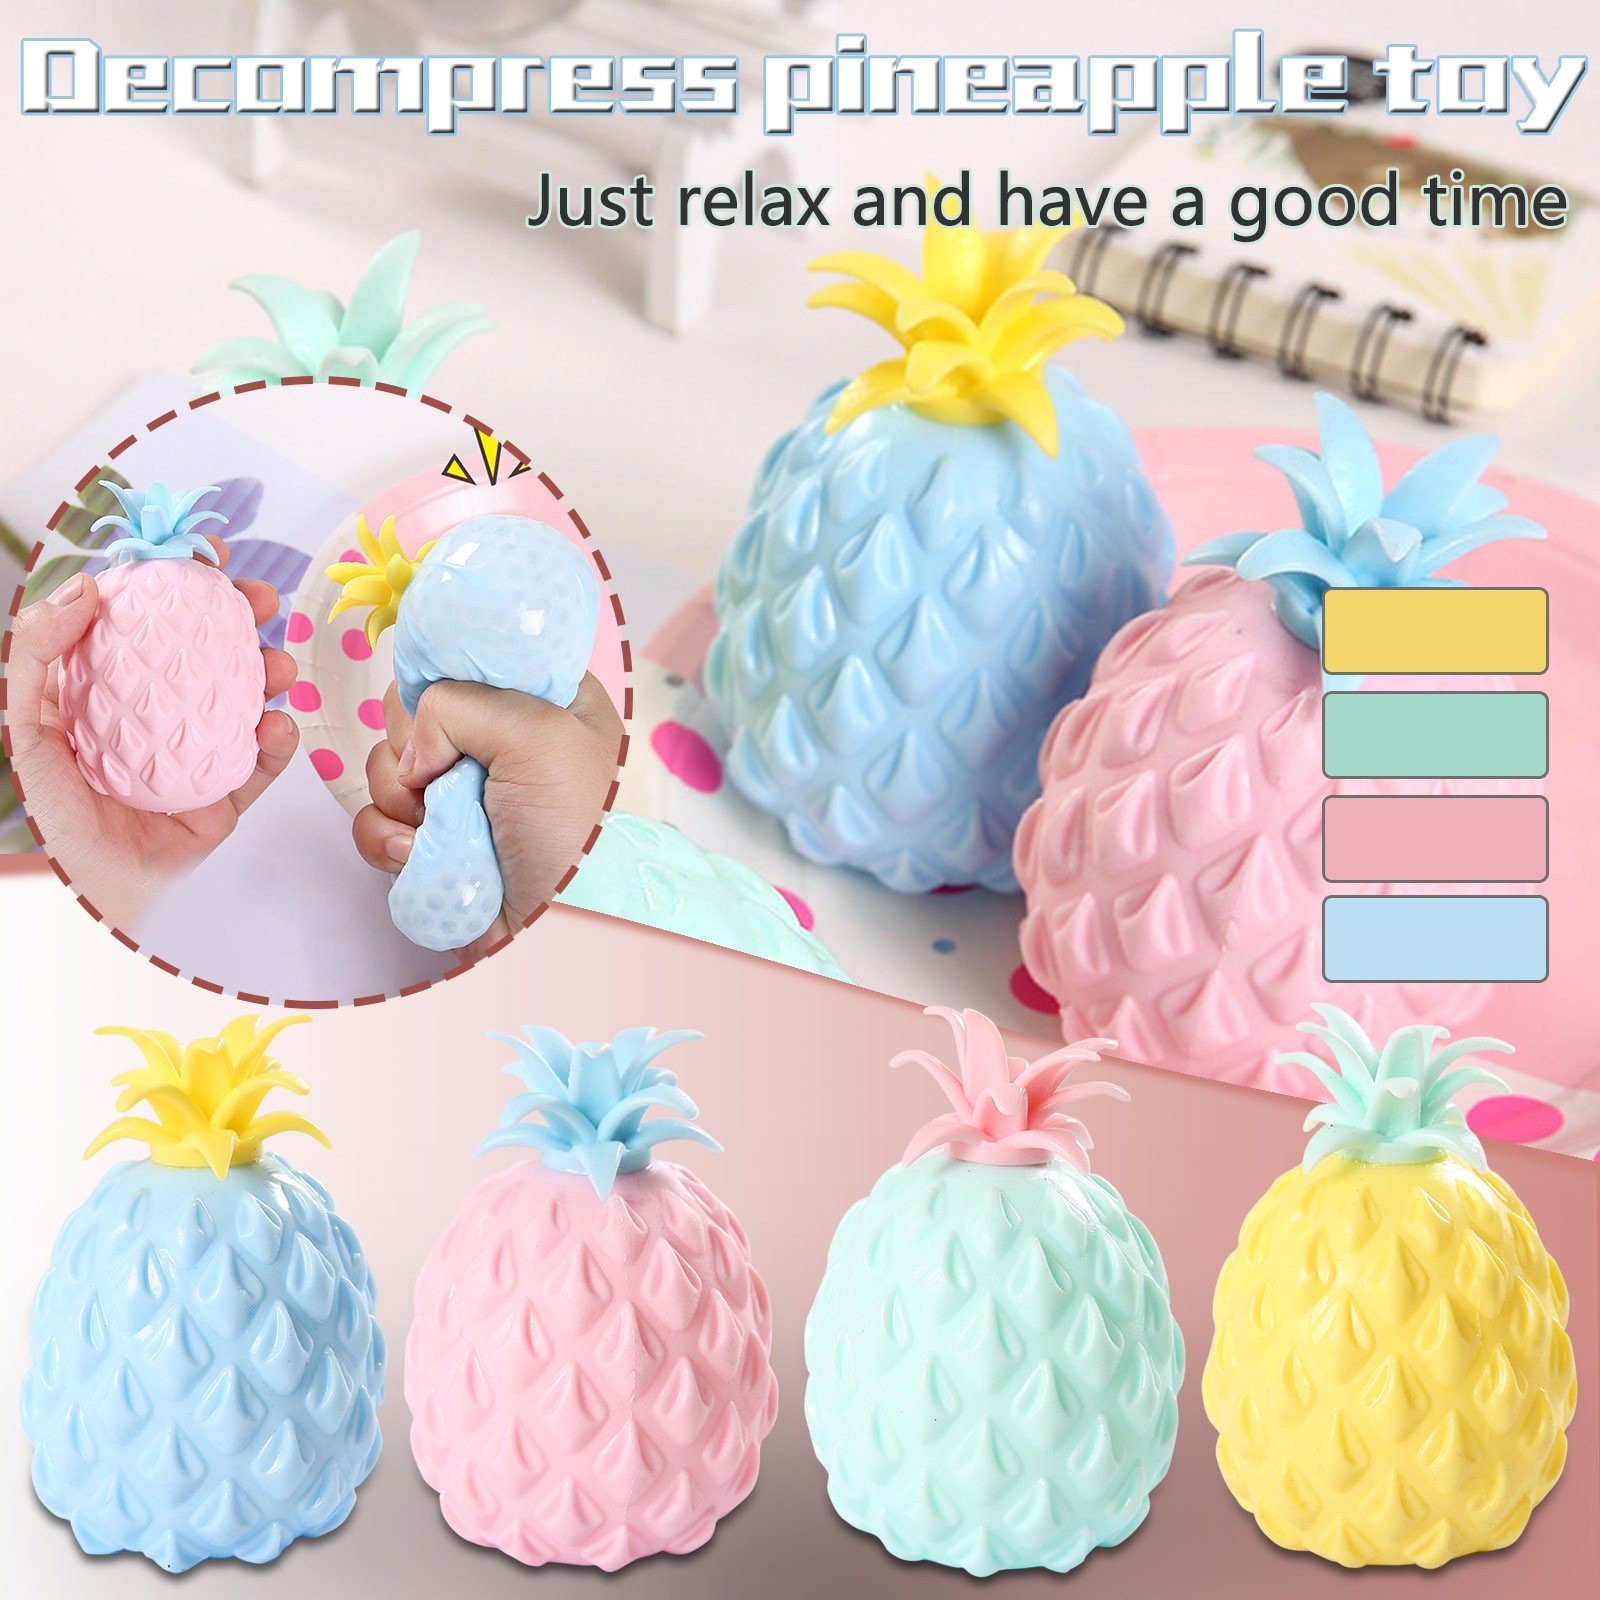 Sensory Toy Ball-Stress Pineapple Fidget Squishy Reliever Children Gift Fun Adult Creativity